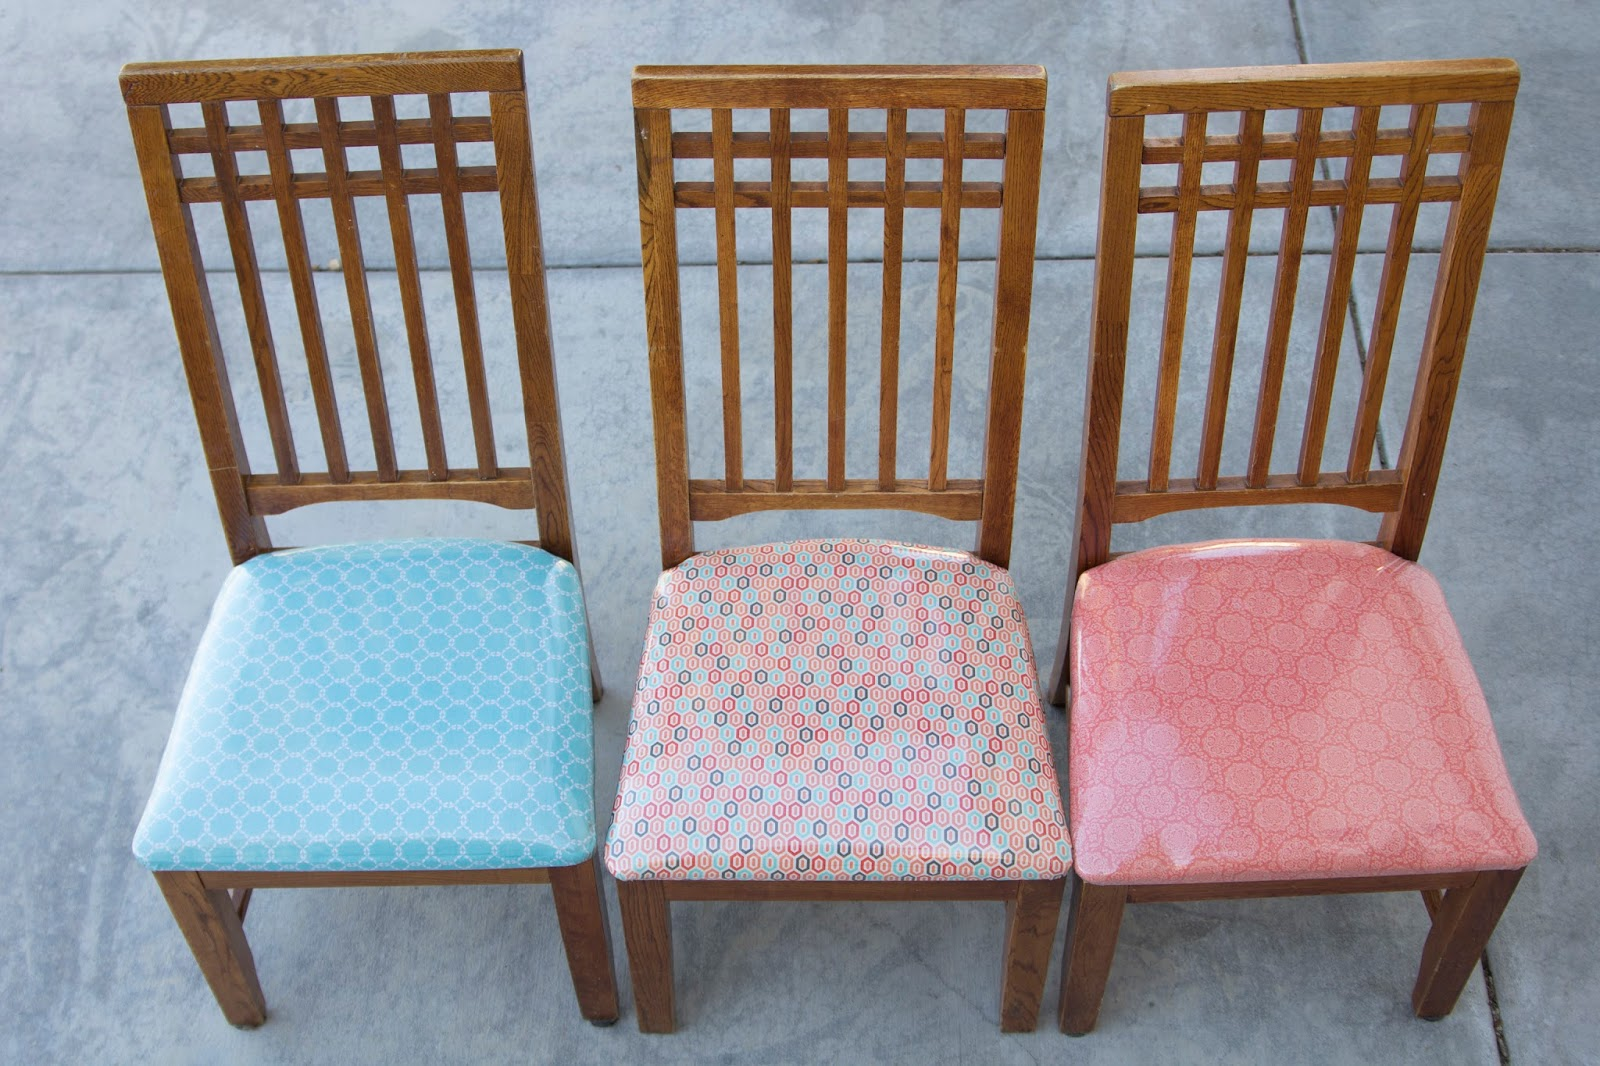 How to Recover Old Chairs: Tips and Tricks